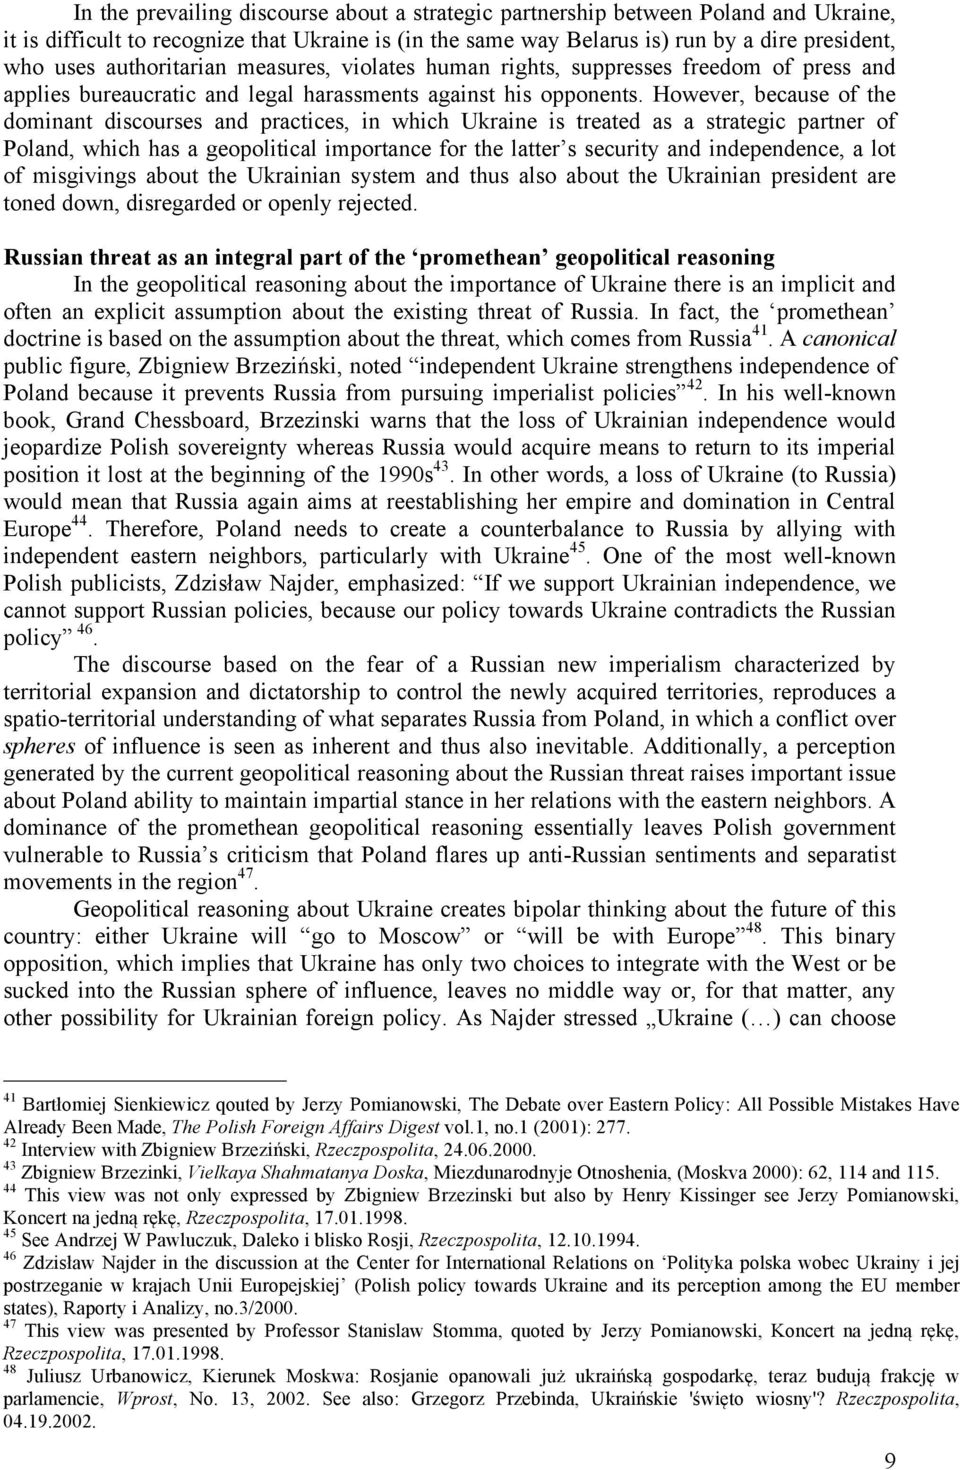 However, because of the dominant discourses and practices, in which Ukraine is treated as a strategic partner of Poland, which has a geopolitical importance for the latter s security and